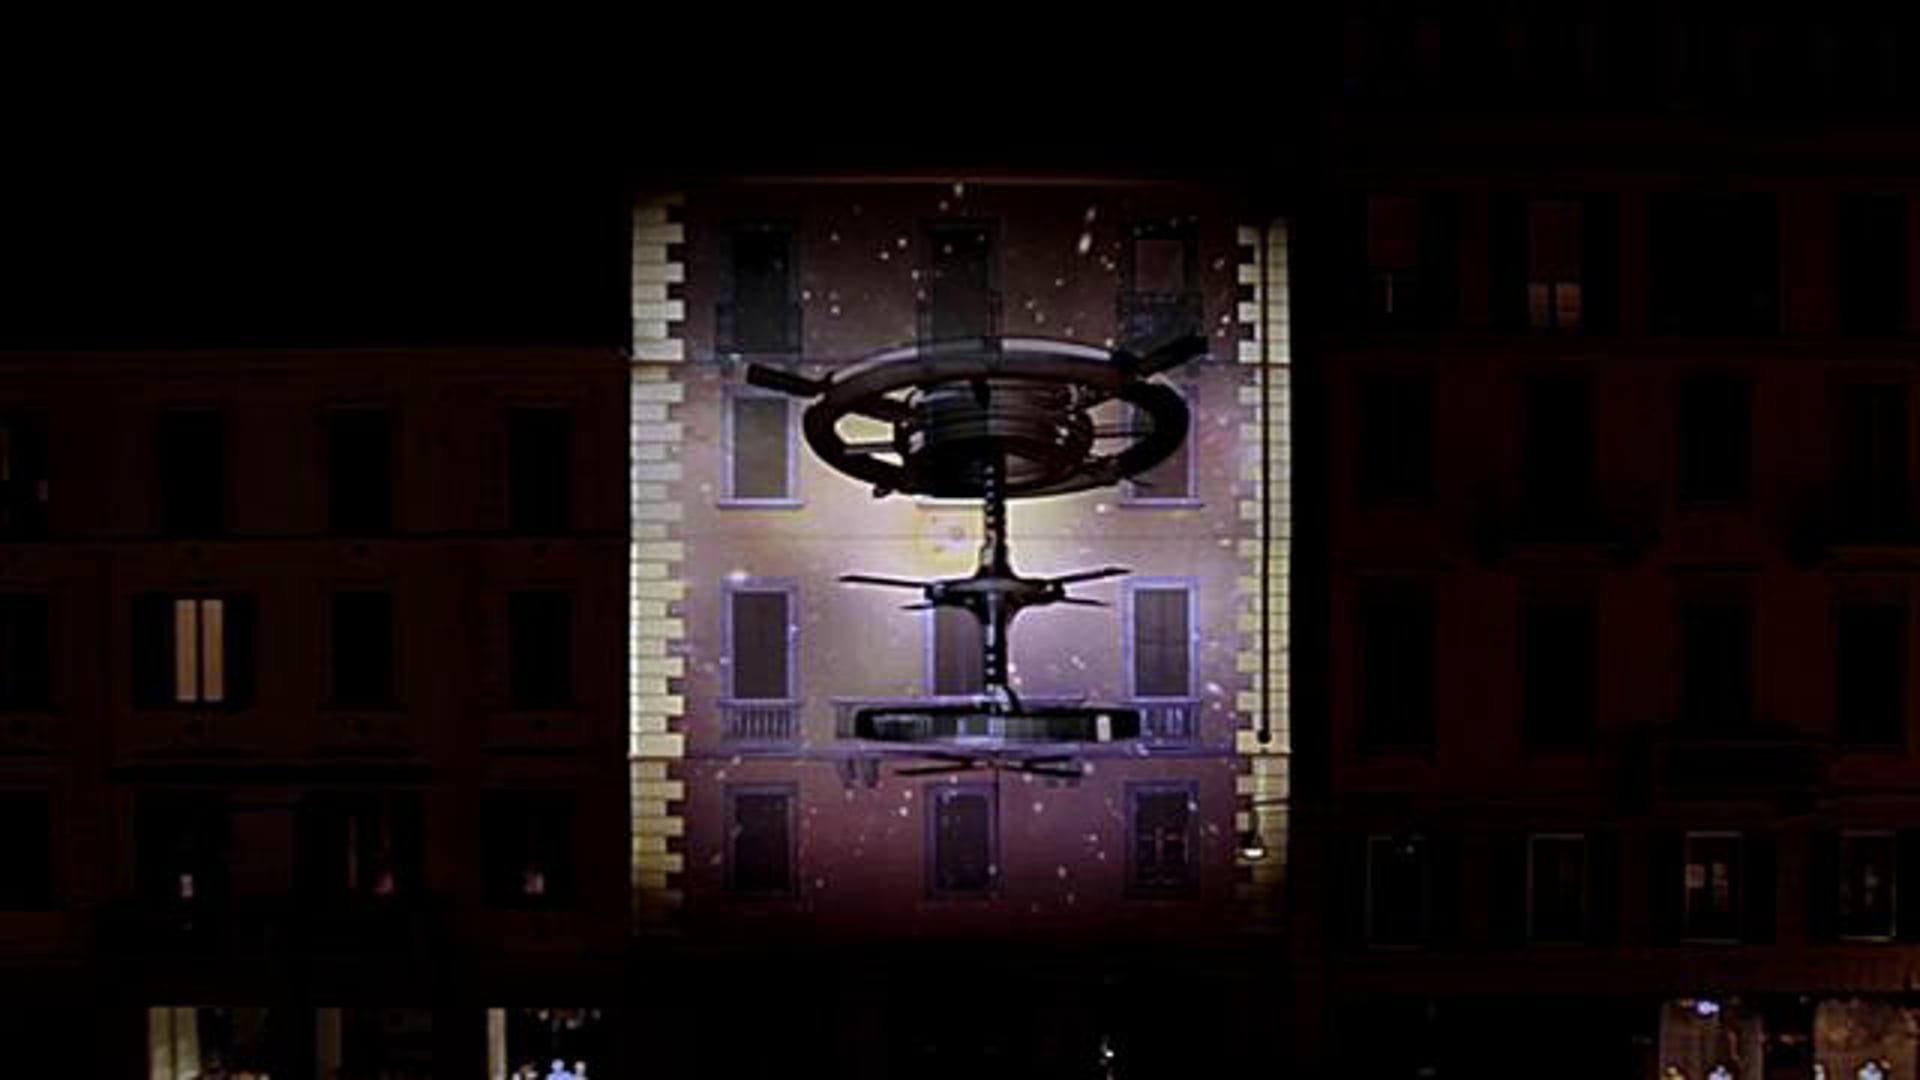 3D Mapping facade projection for Take That Progress Live Tour presented by SAMSUNG